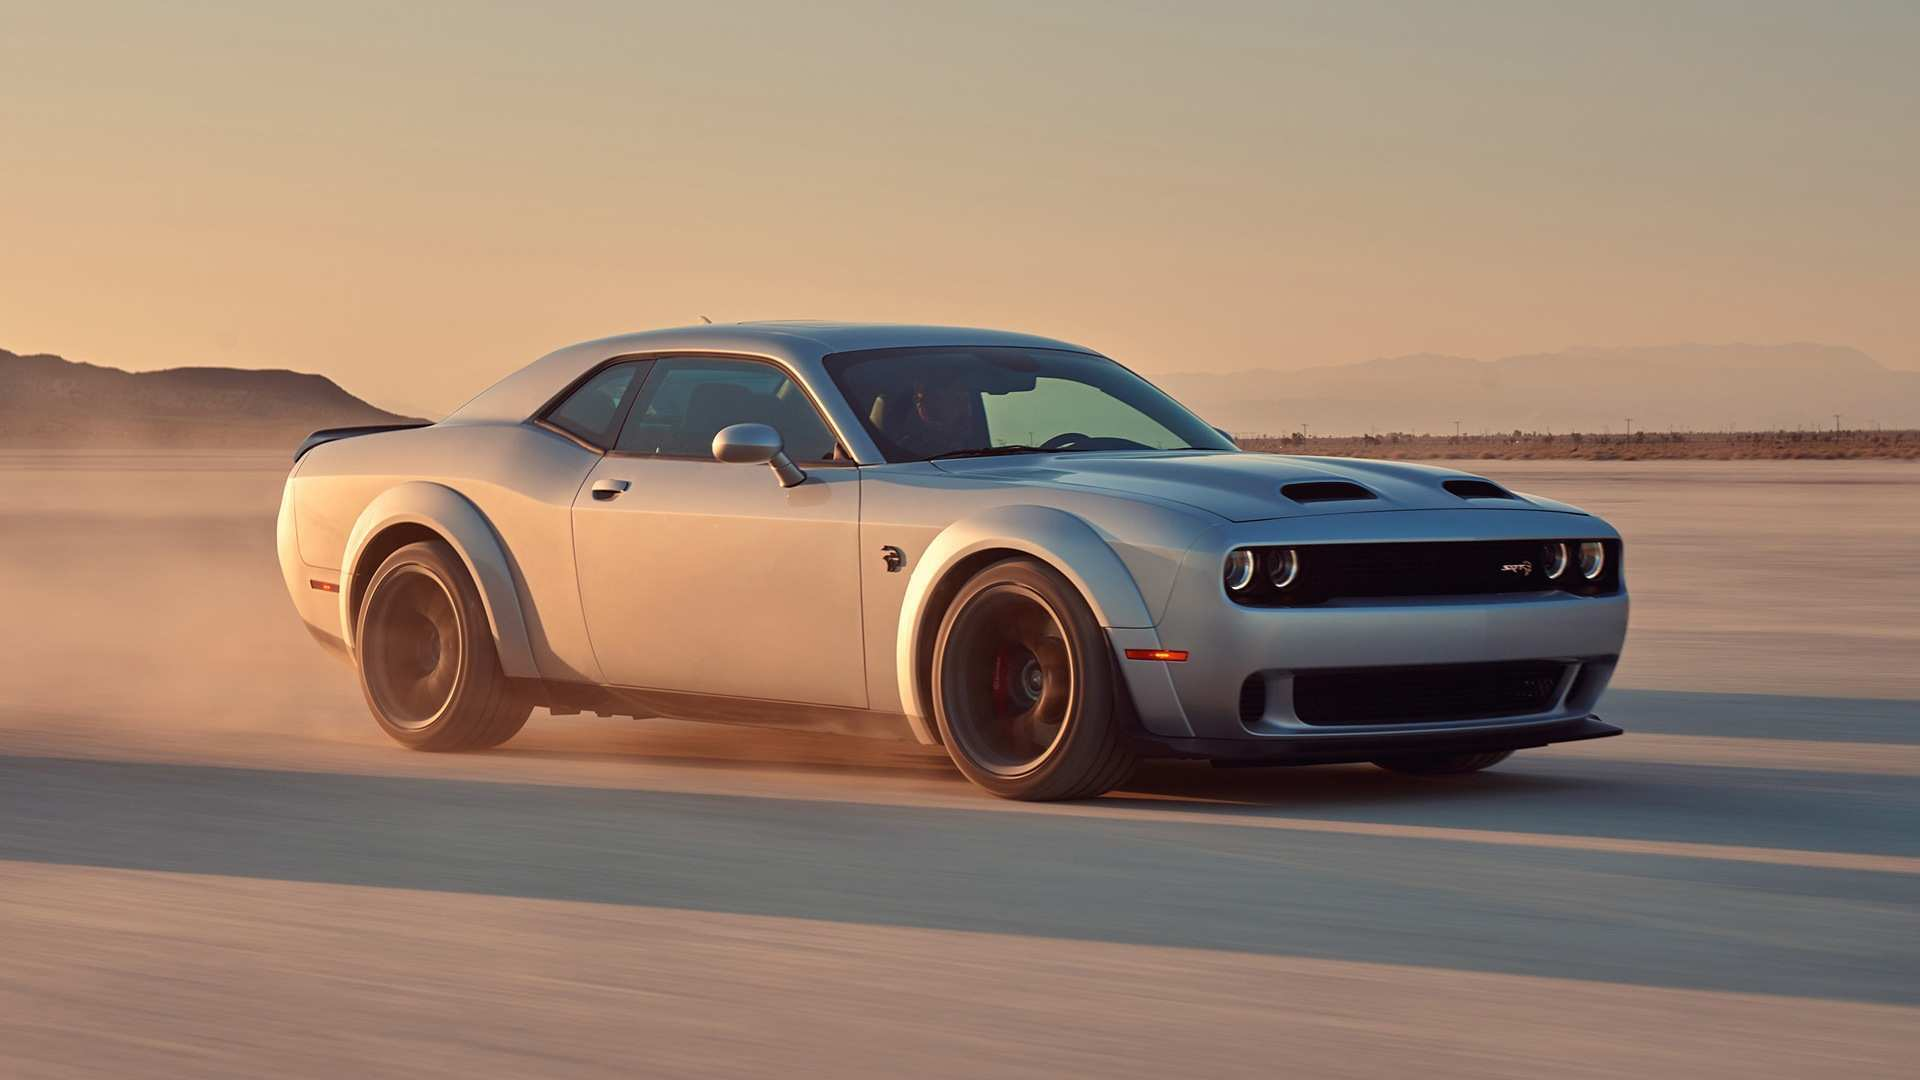 74 All New New 2019 Dodge Challenger Hellcat Red Eye Performance Wallpaper with New 2019 Dodge Challenger Hellcat Red Eye Performance